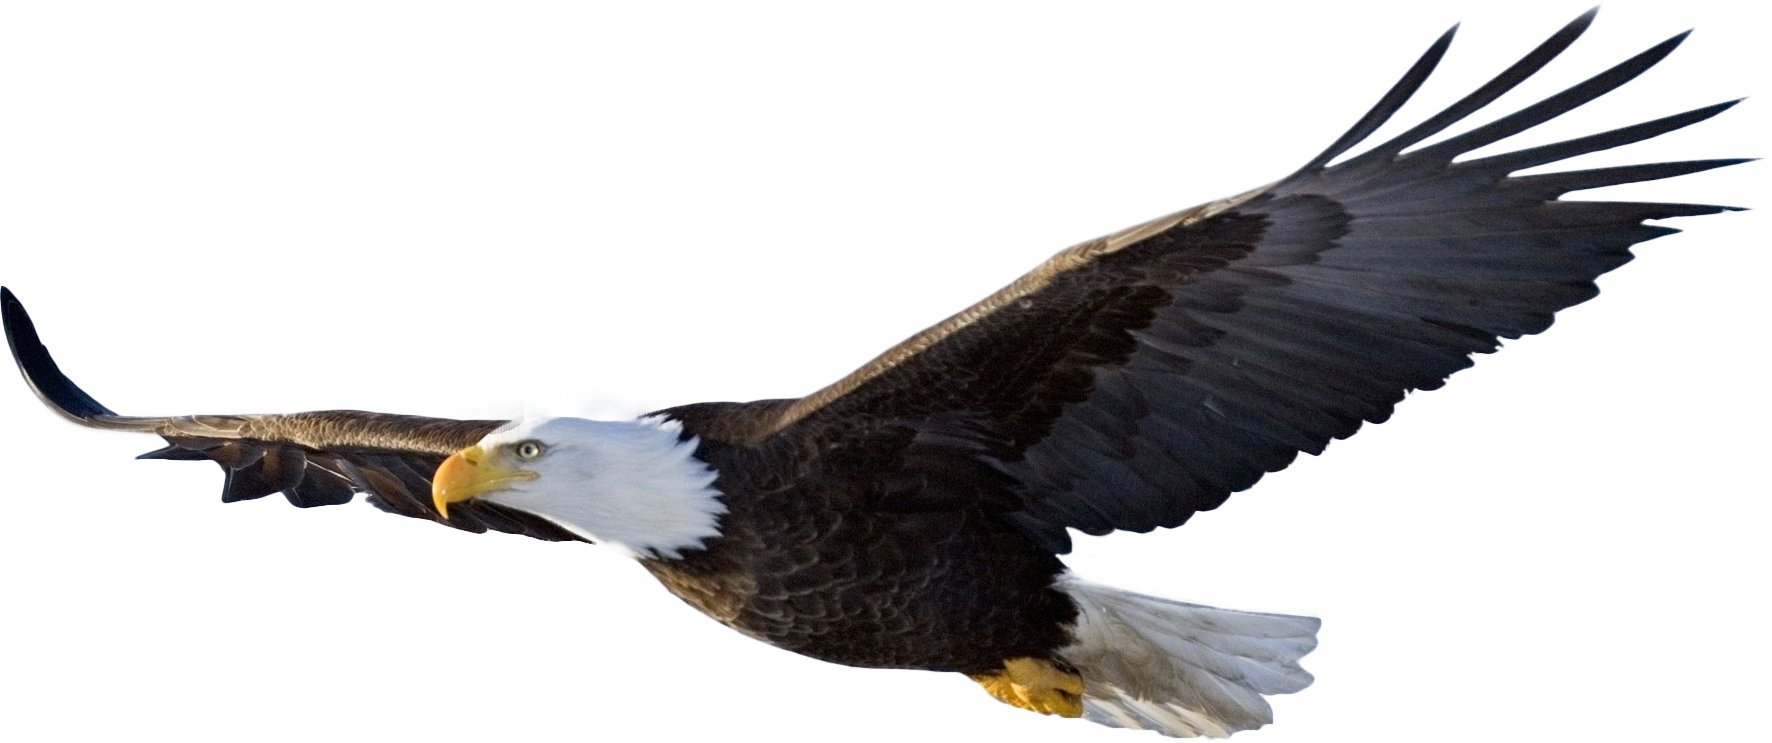 The most awesome images. Hawk clipart strong eagle